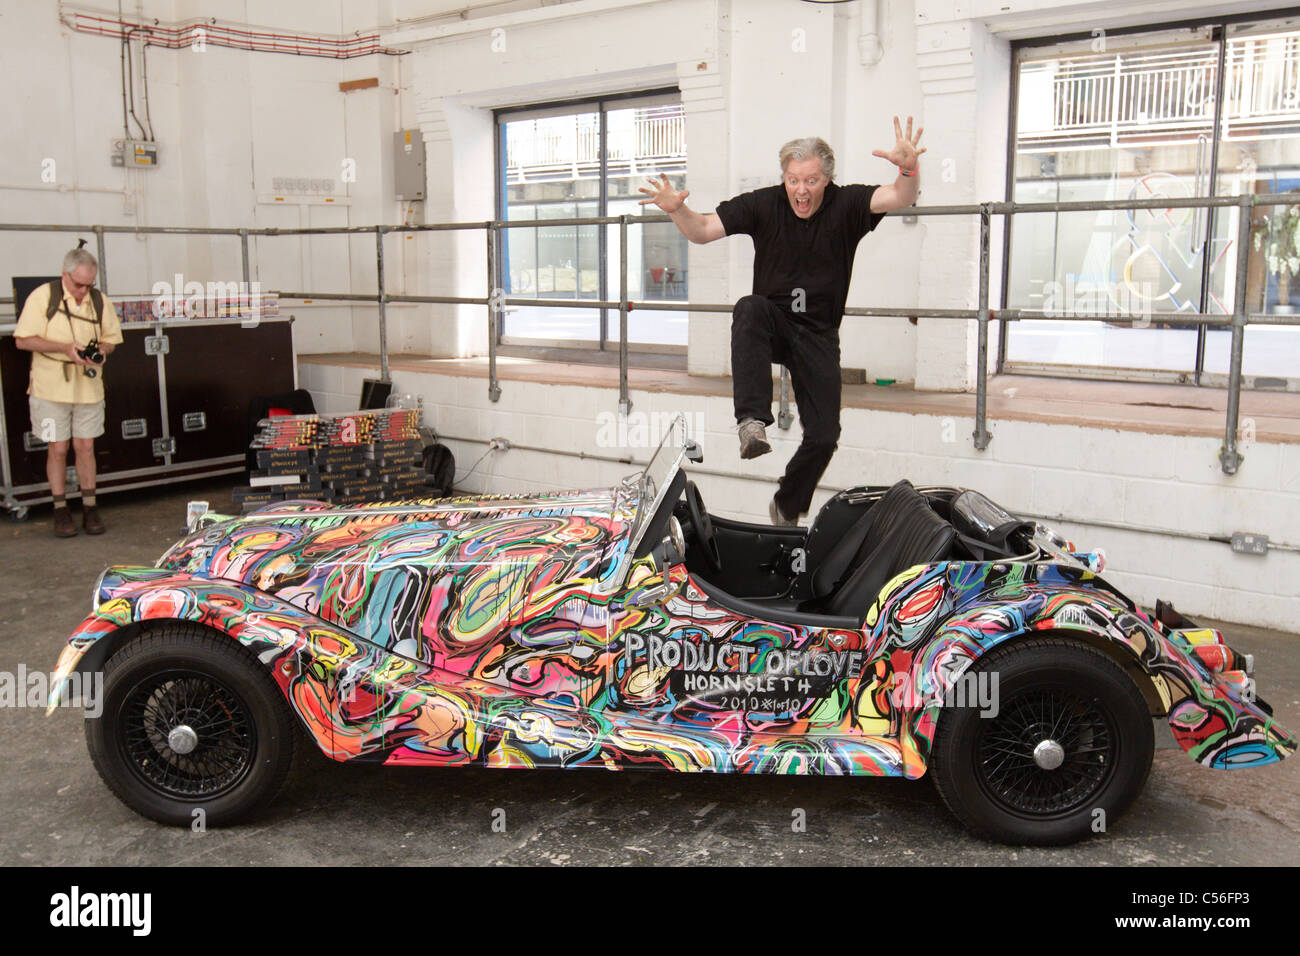 A Hand Painted Morgan Sports Car By Artist Kristain Von Hornsleth